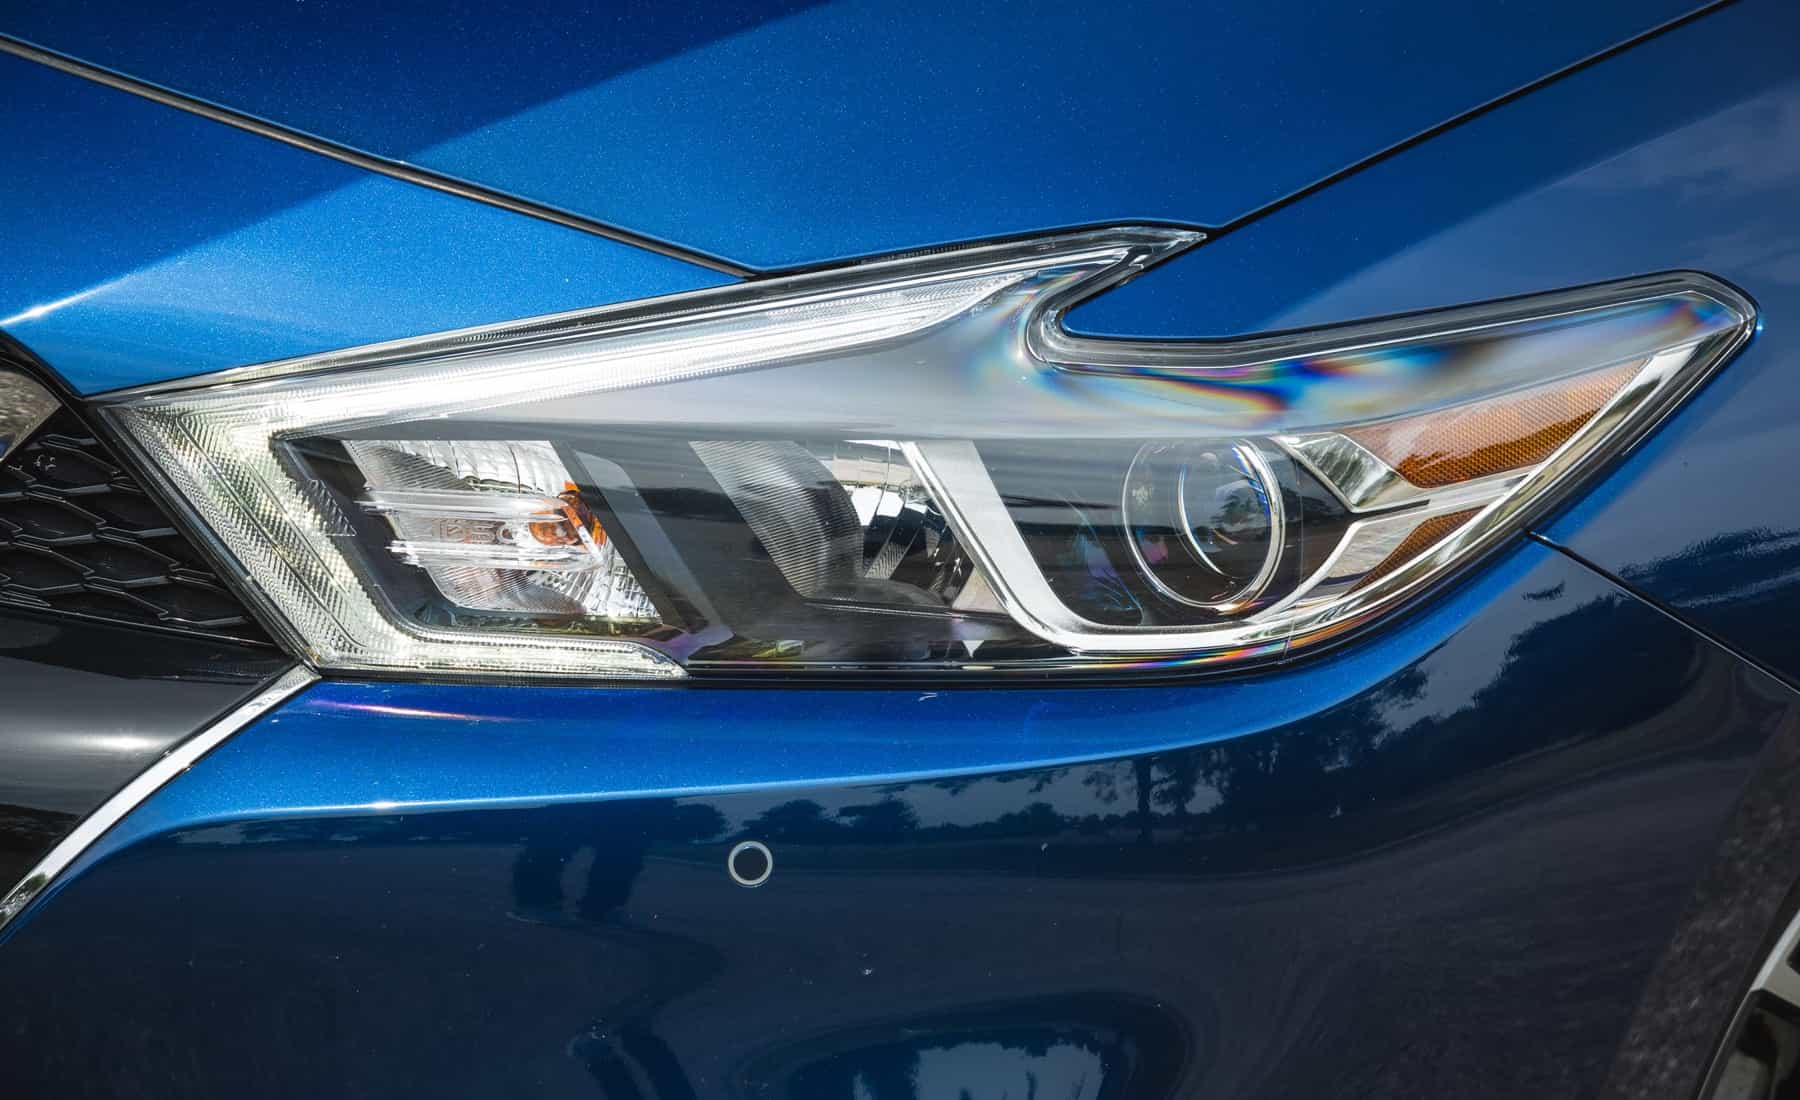 2017 Nissan Maxima Exterior View Headlight (Photo 8 of 40)